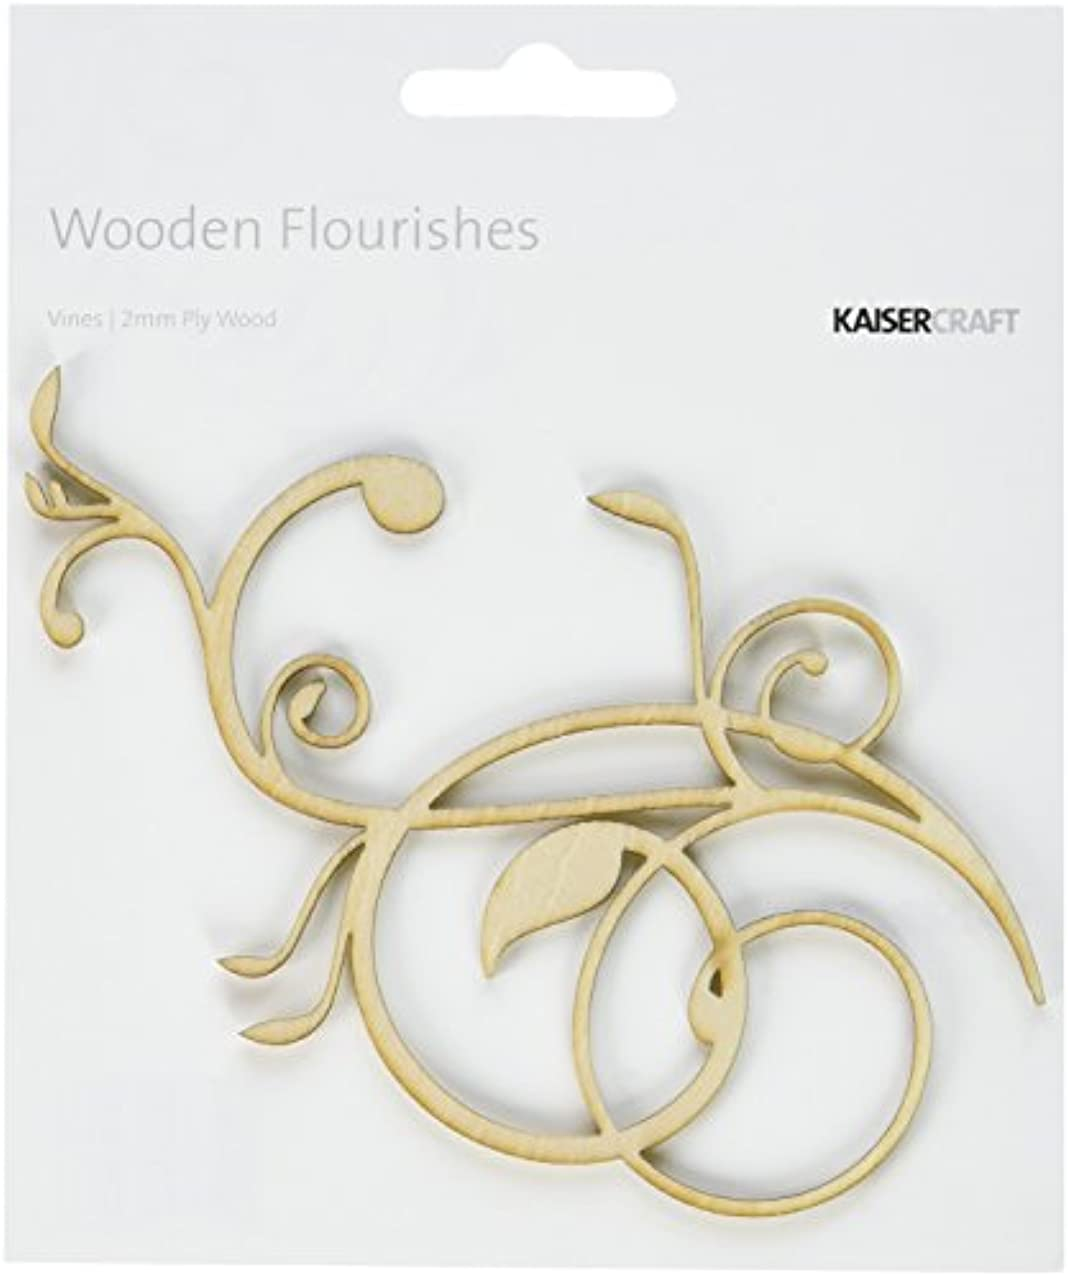 Kaisercraft Wood Flourishes, Vines